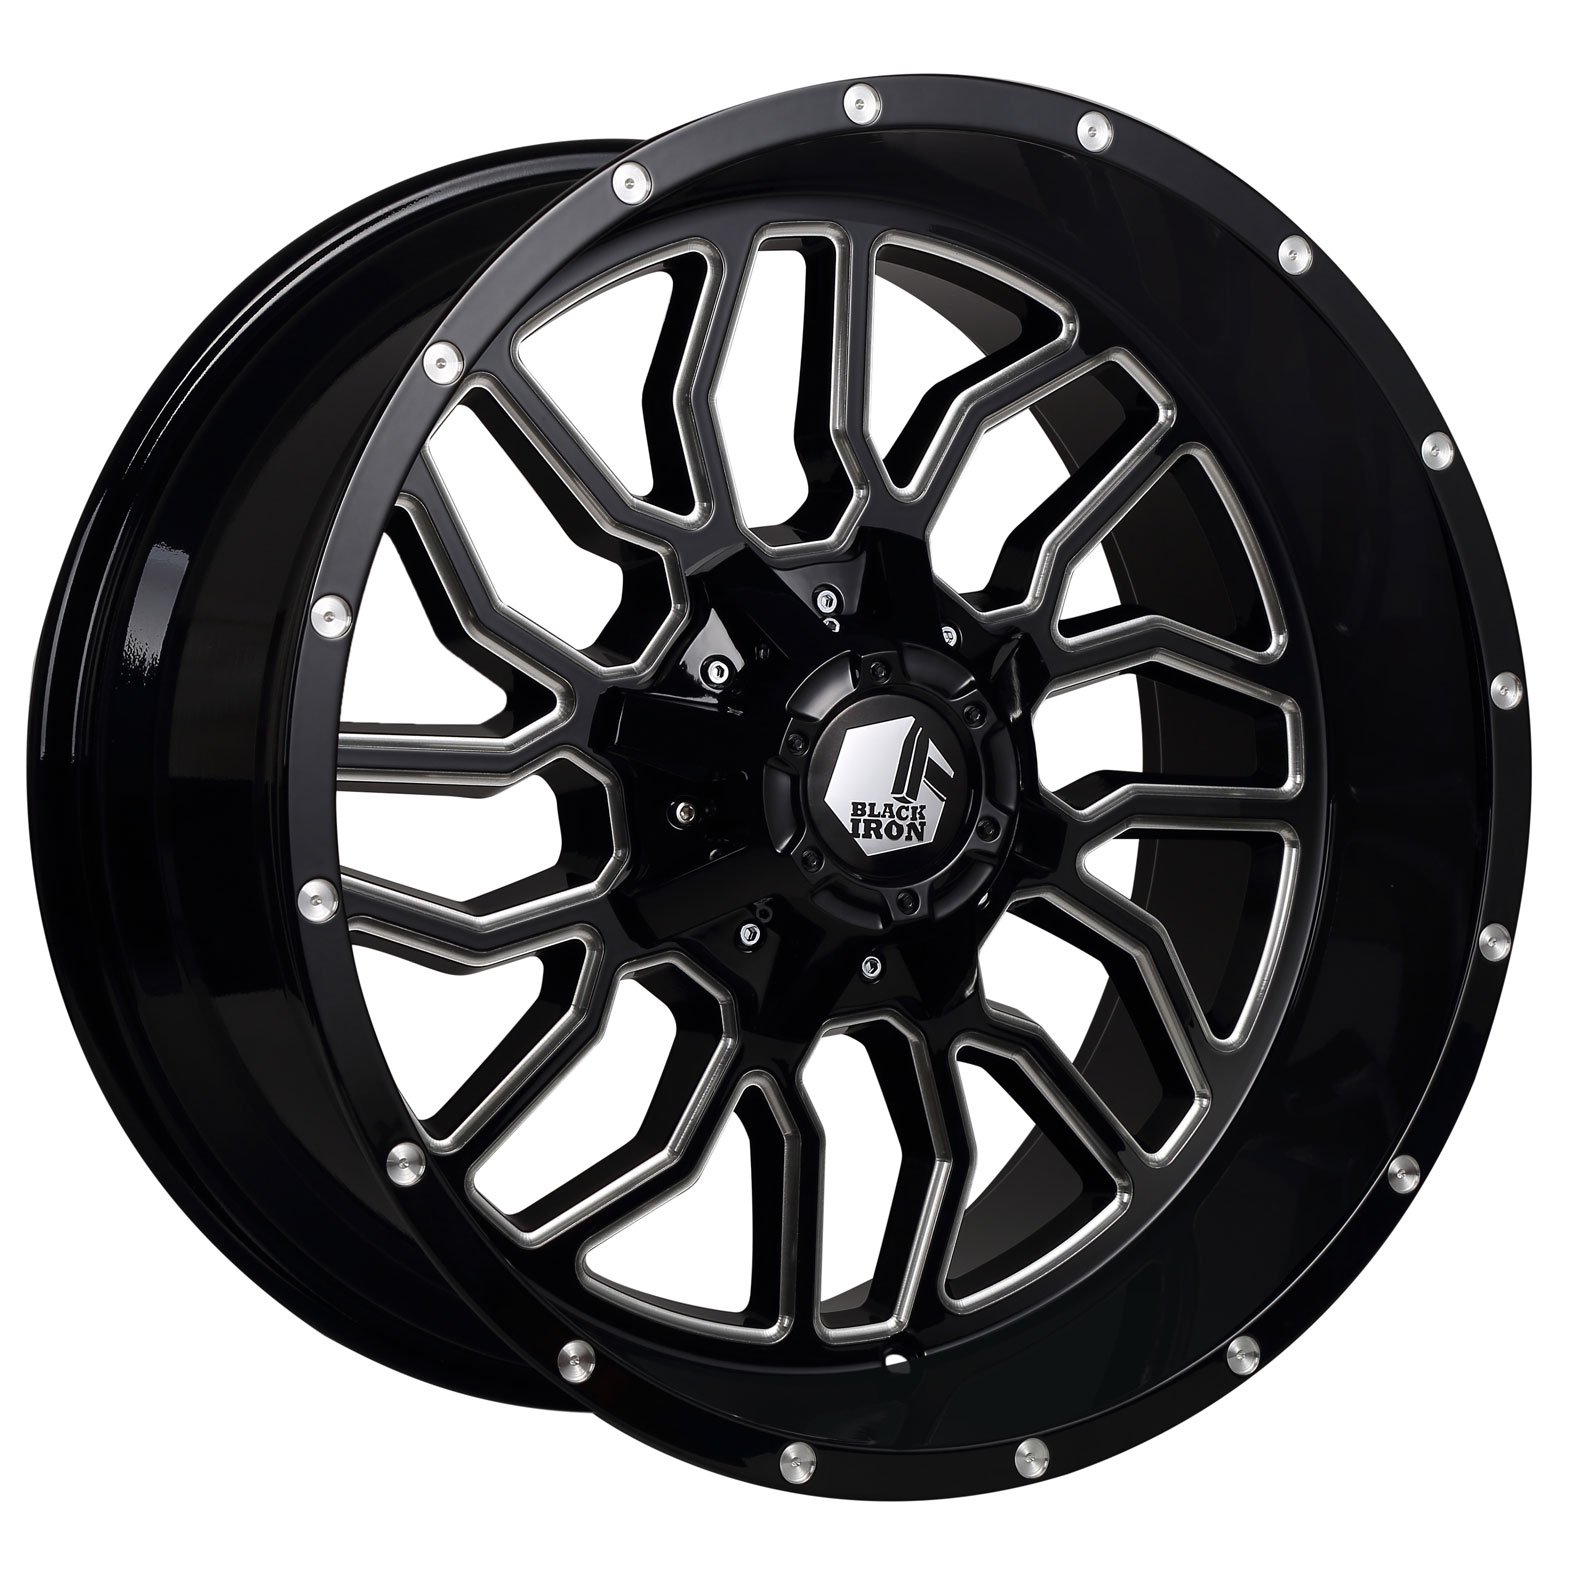 Black Iron Kodiak Black Gloss Milled Wheel